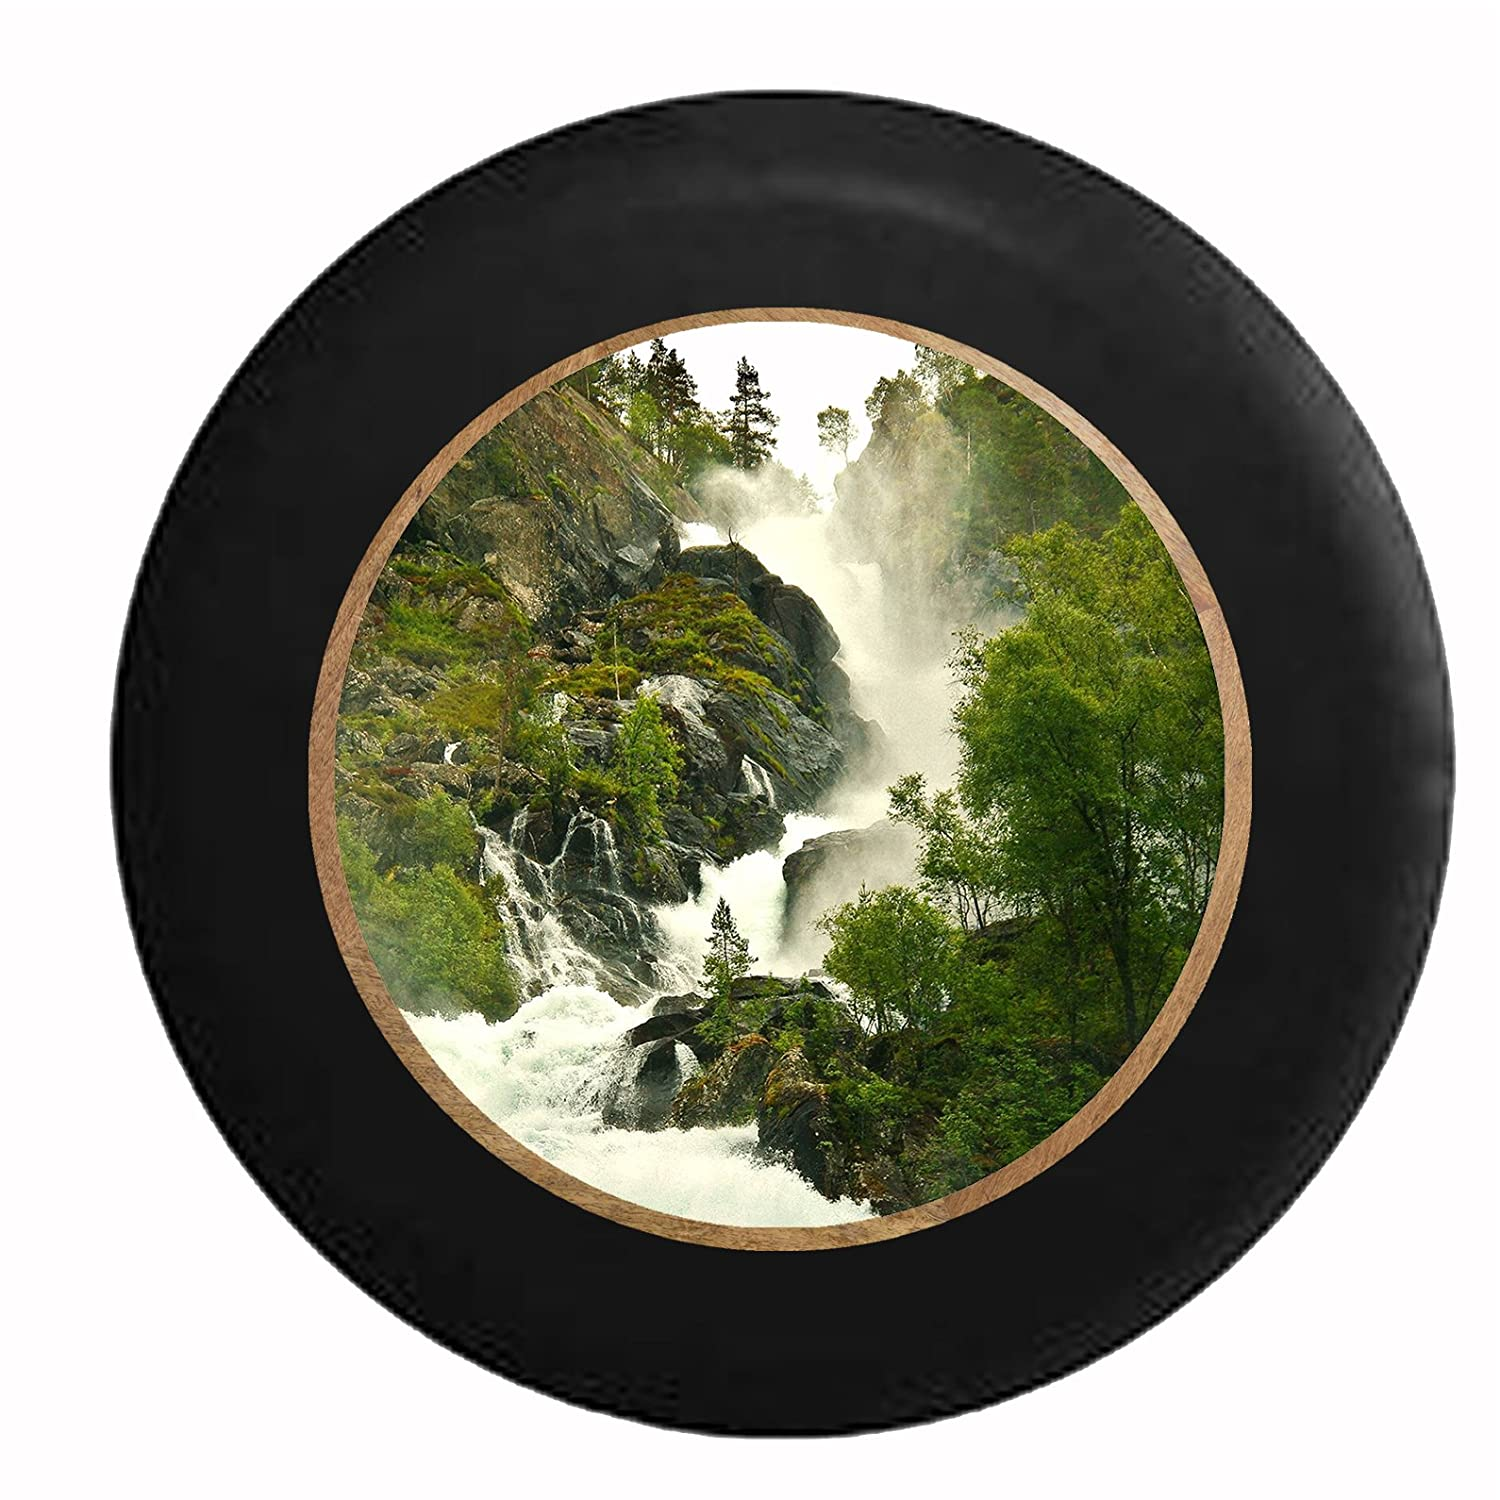 Full Color White Water Waterfall Crashing Thru Rocky Cliffside Jeep RV Camper Spare Tire Cover Black 35 in Pike Outdoors